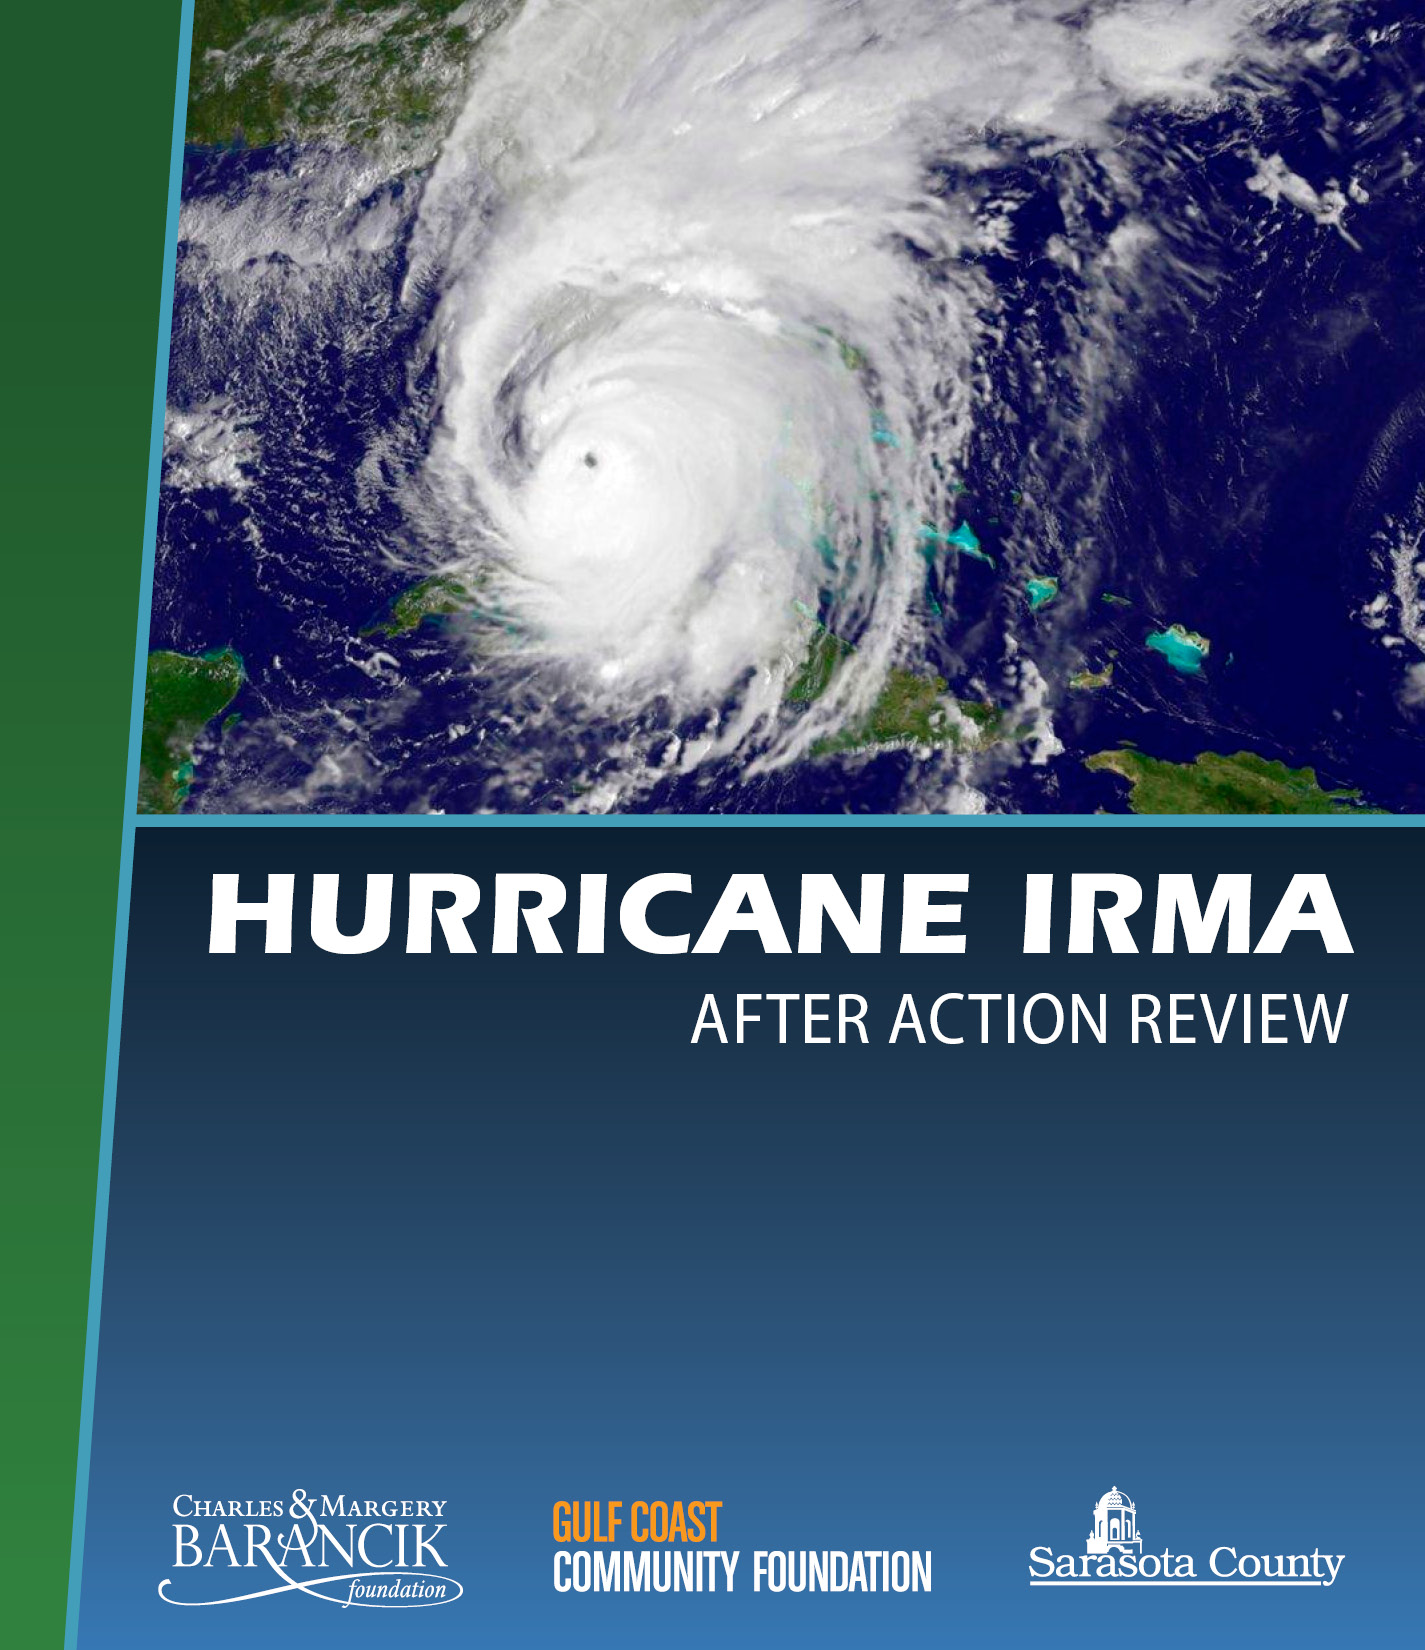 IRMA After Action Review COVER